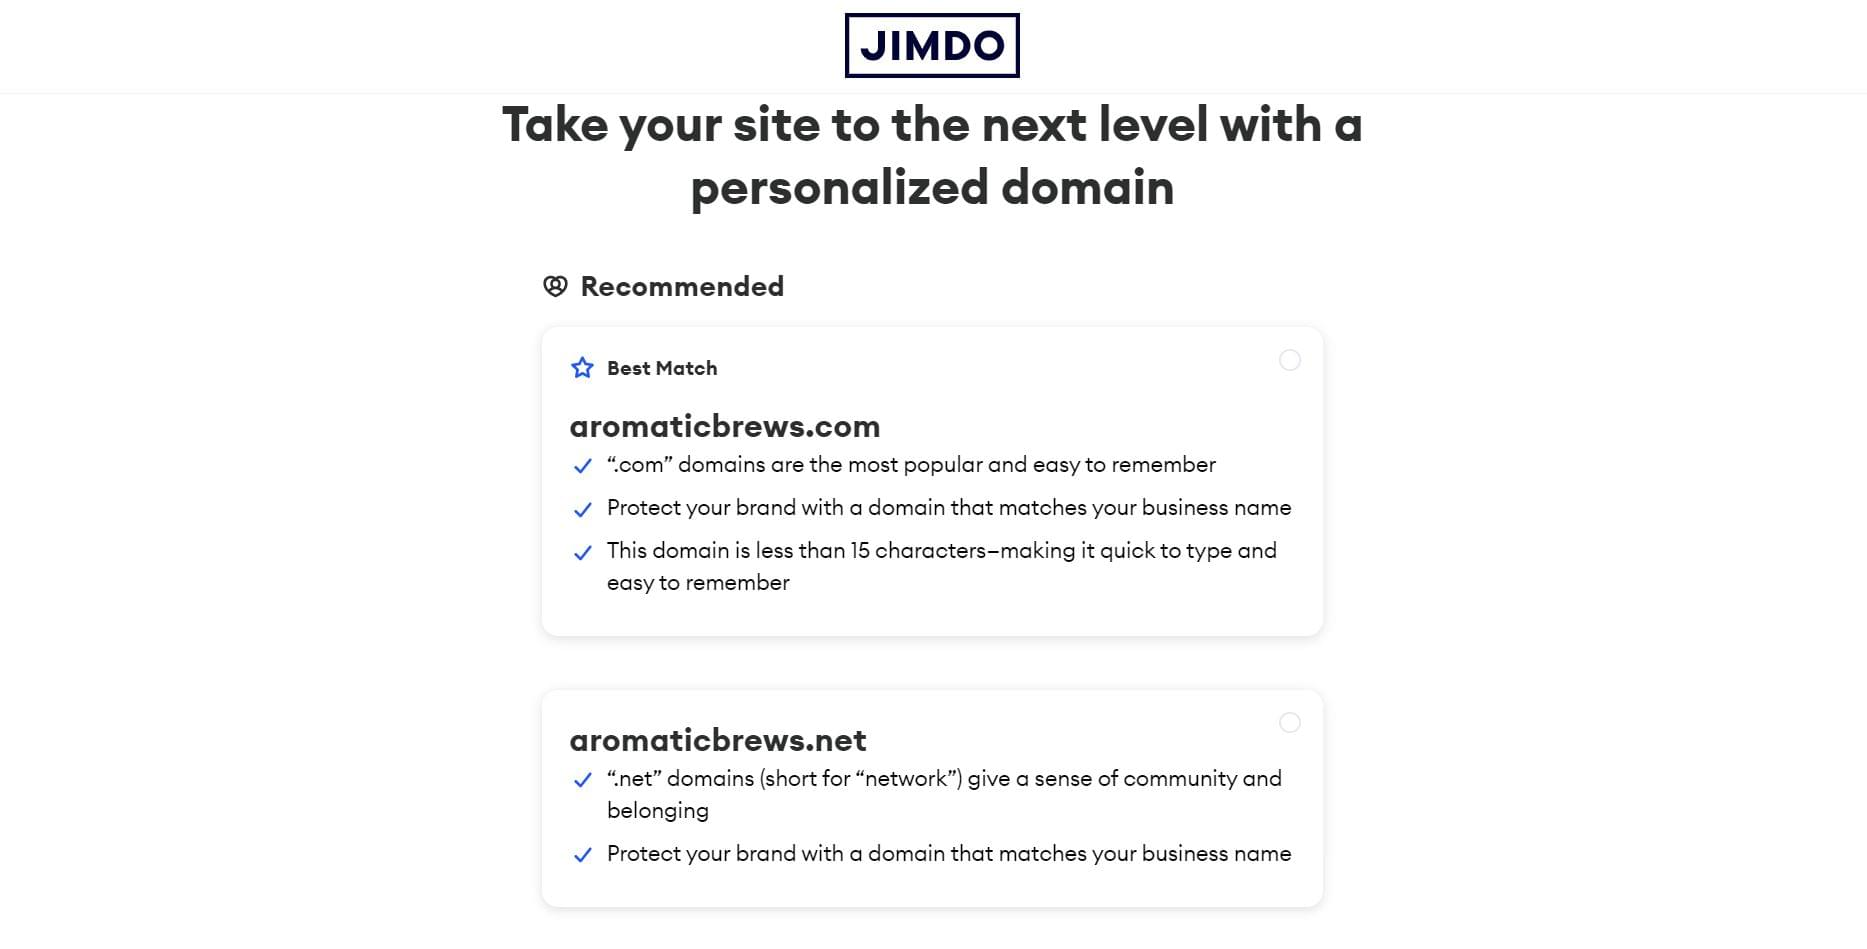 Choose a personalized domain